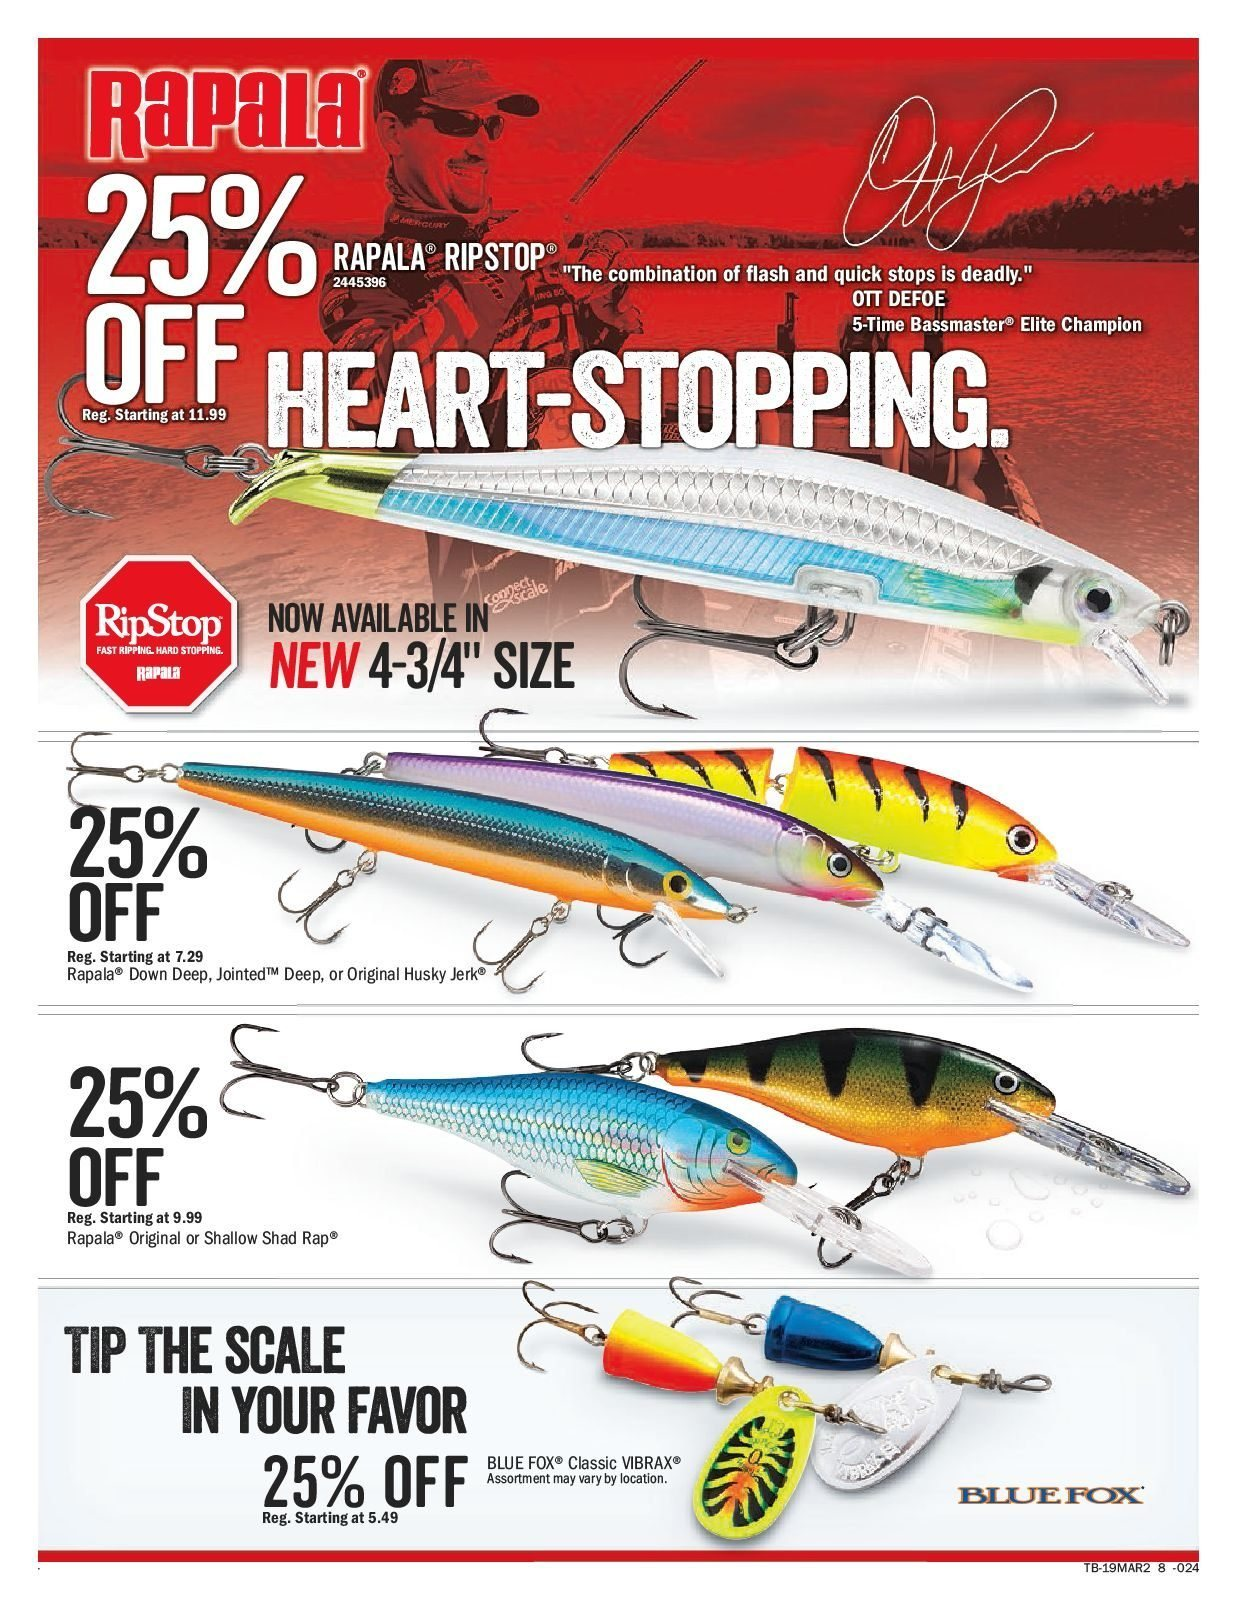 Bass Pro Shops Flyer  - March 15, 2019 - March 31, 2019. Page 8.